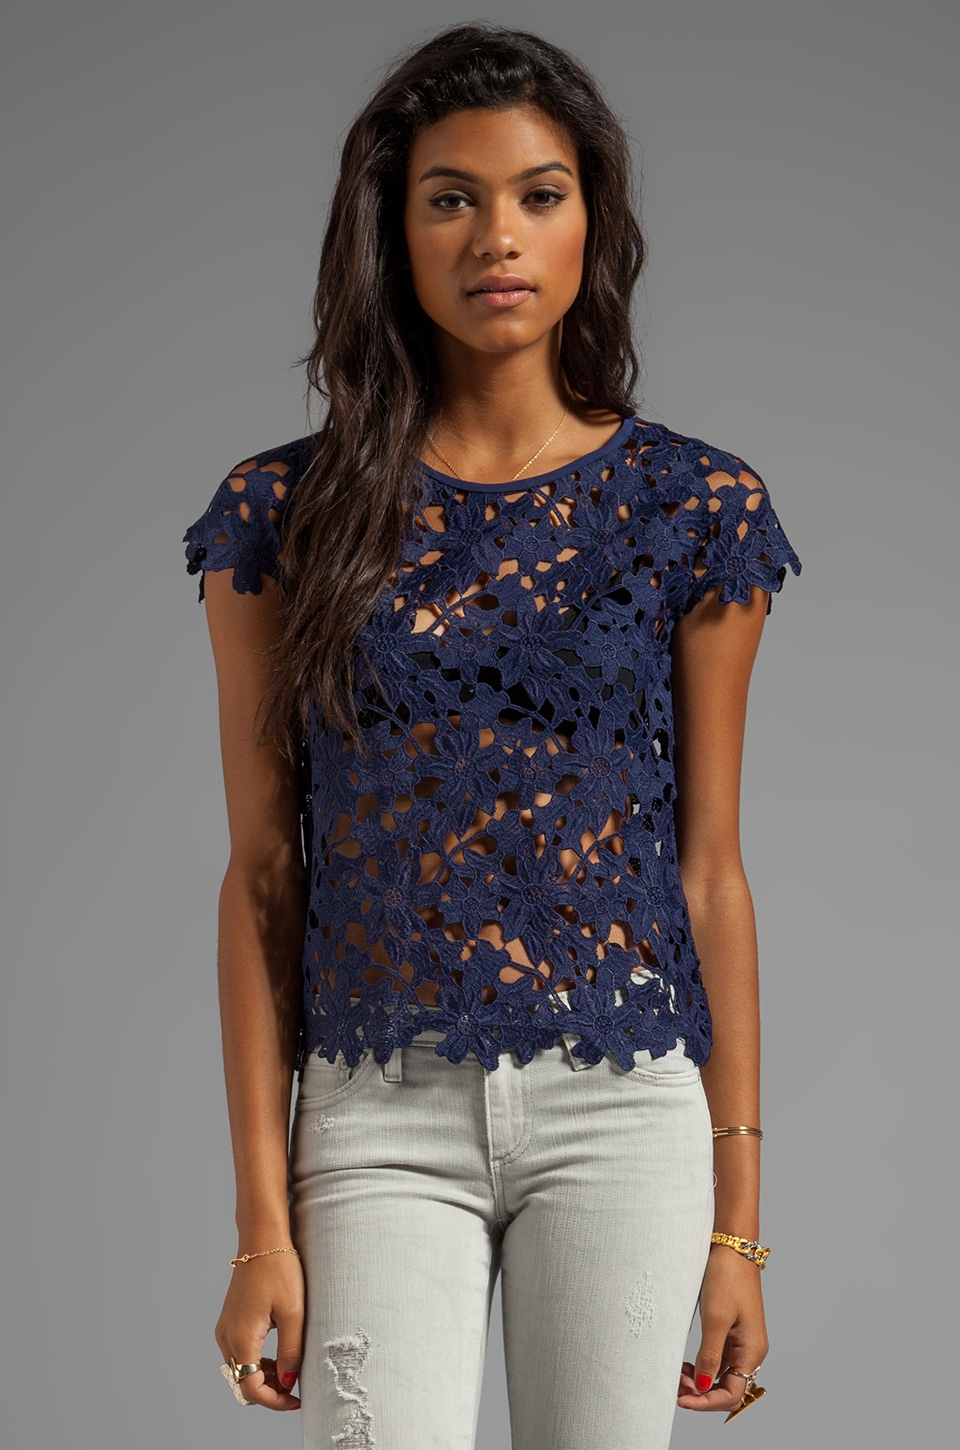 Dolce Vita Quinch Floral Heavy Lace Top in Navy